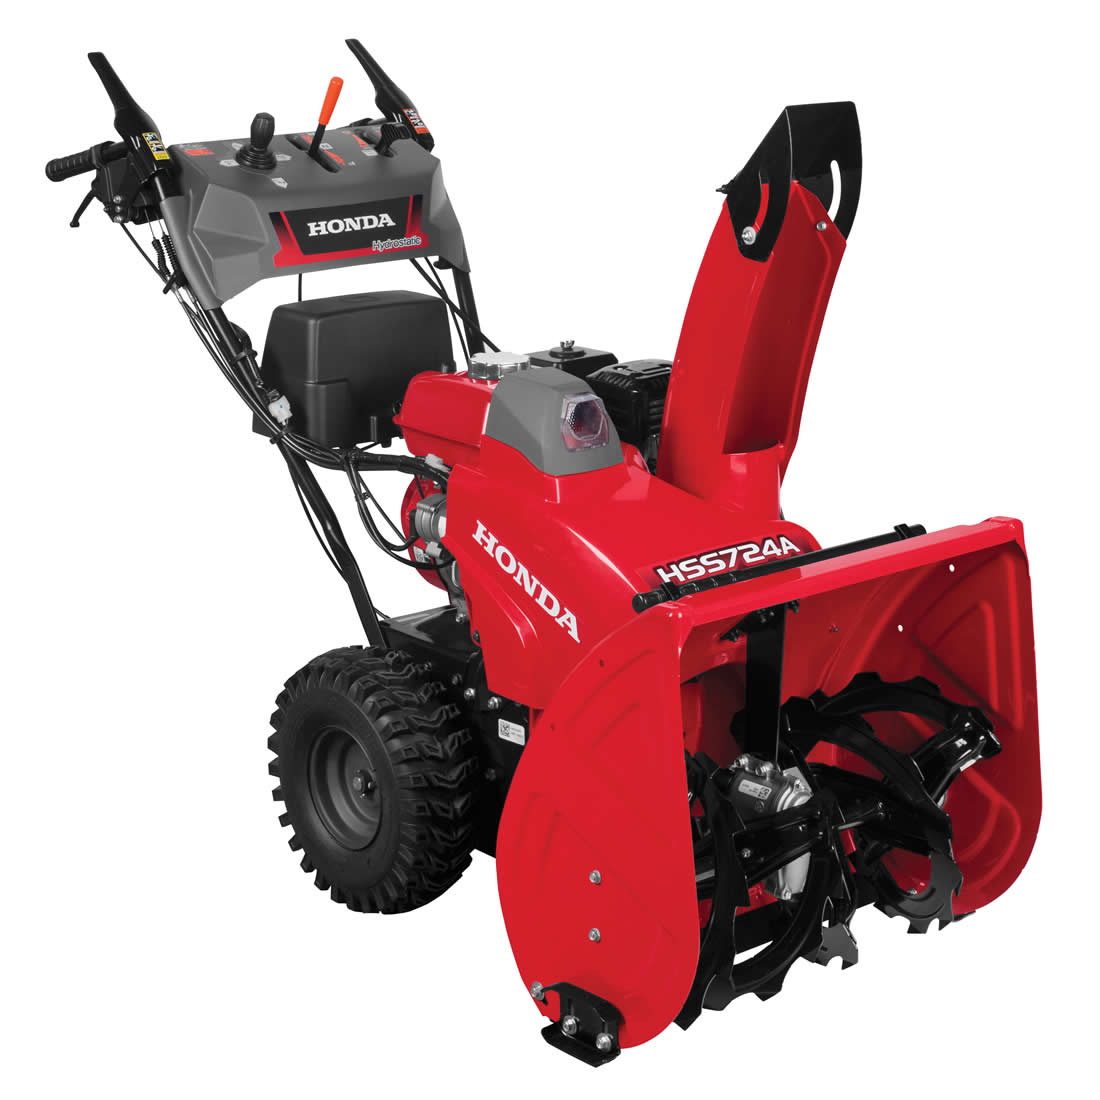 2016 Honda Power Equipment HSS724AW in Chattanooga, Tennessee